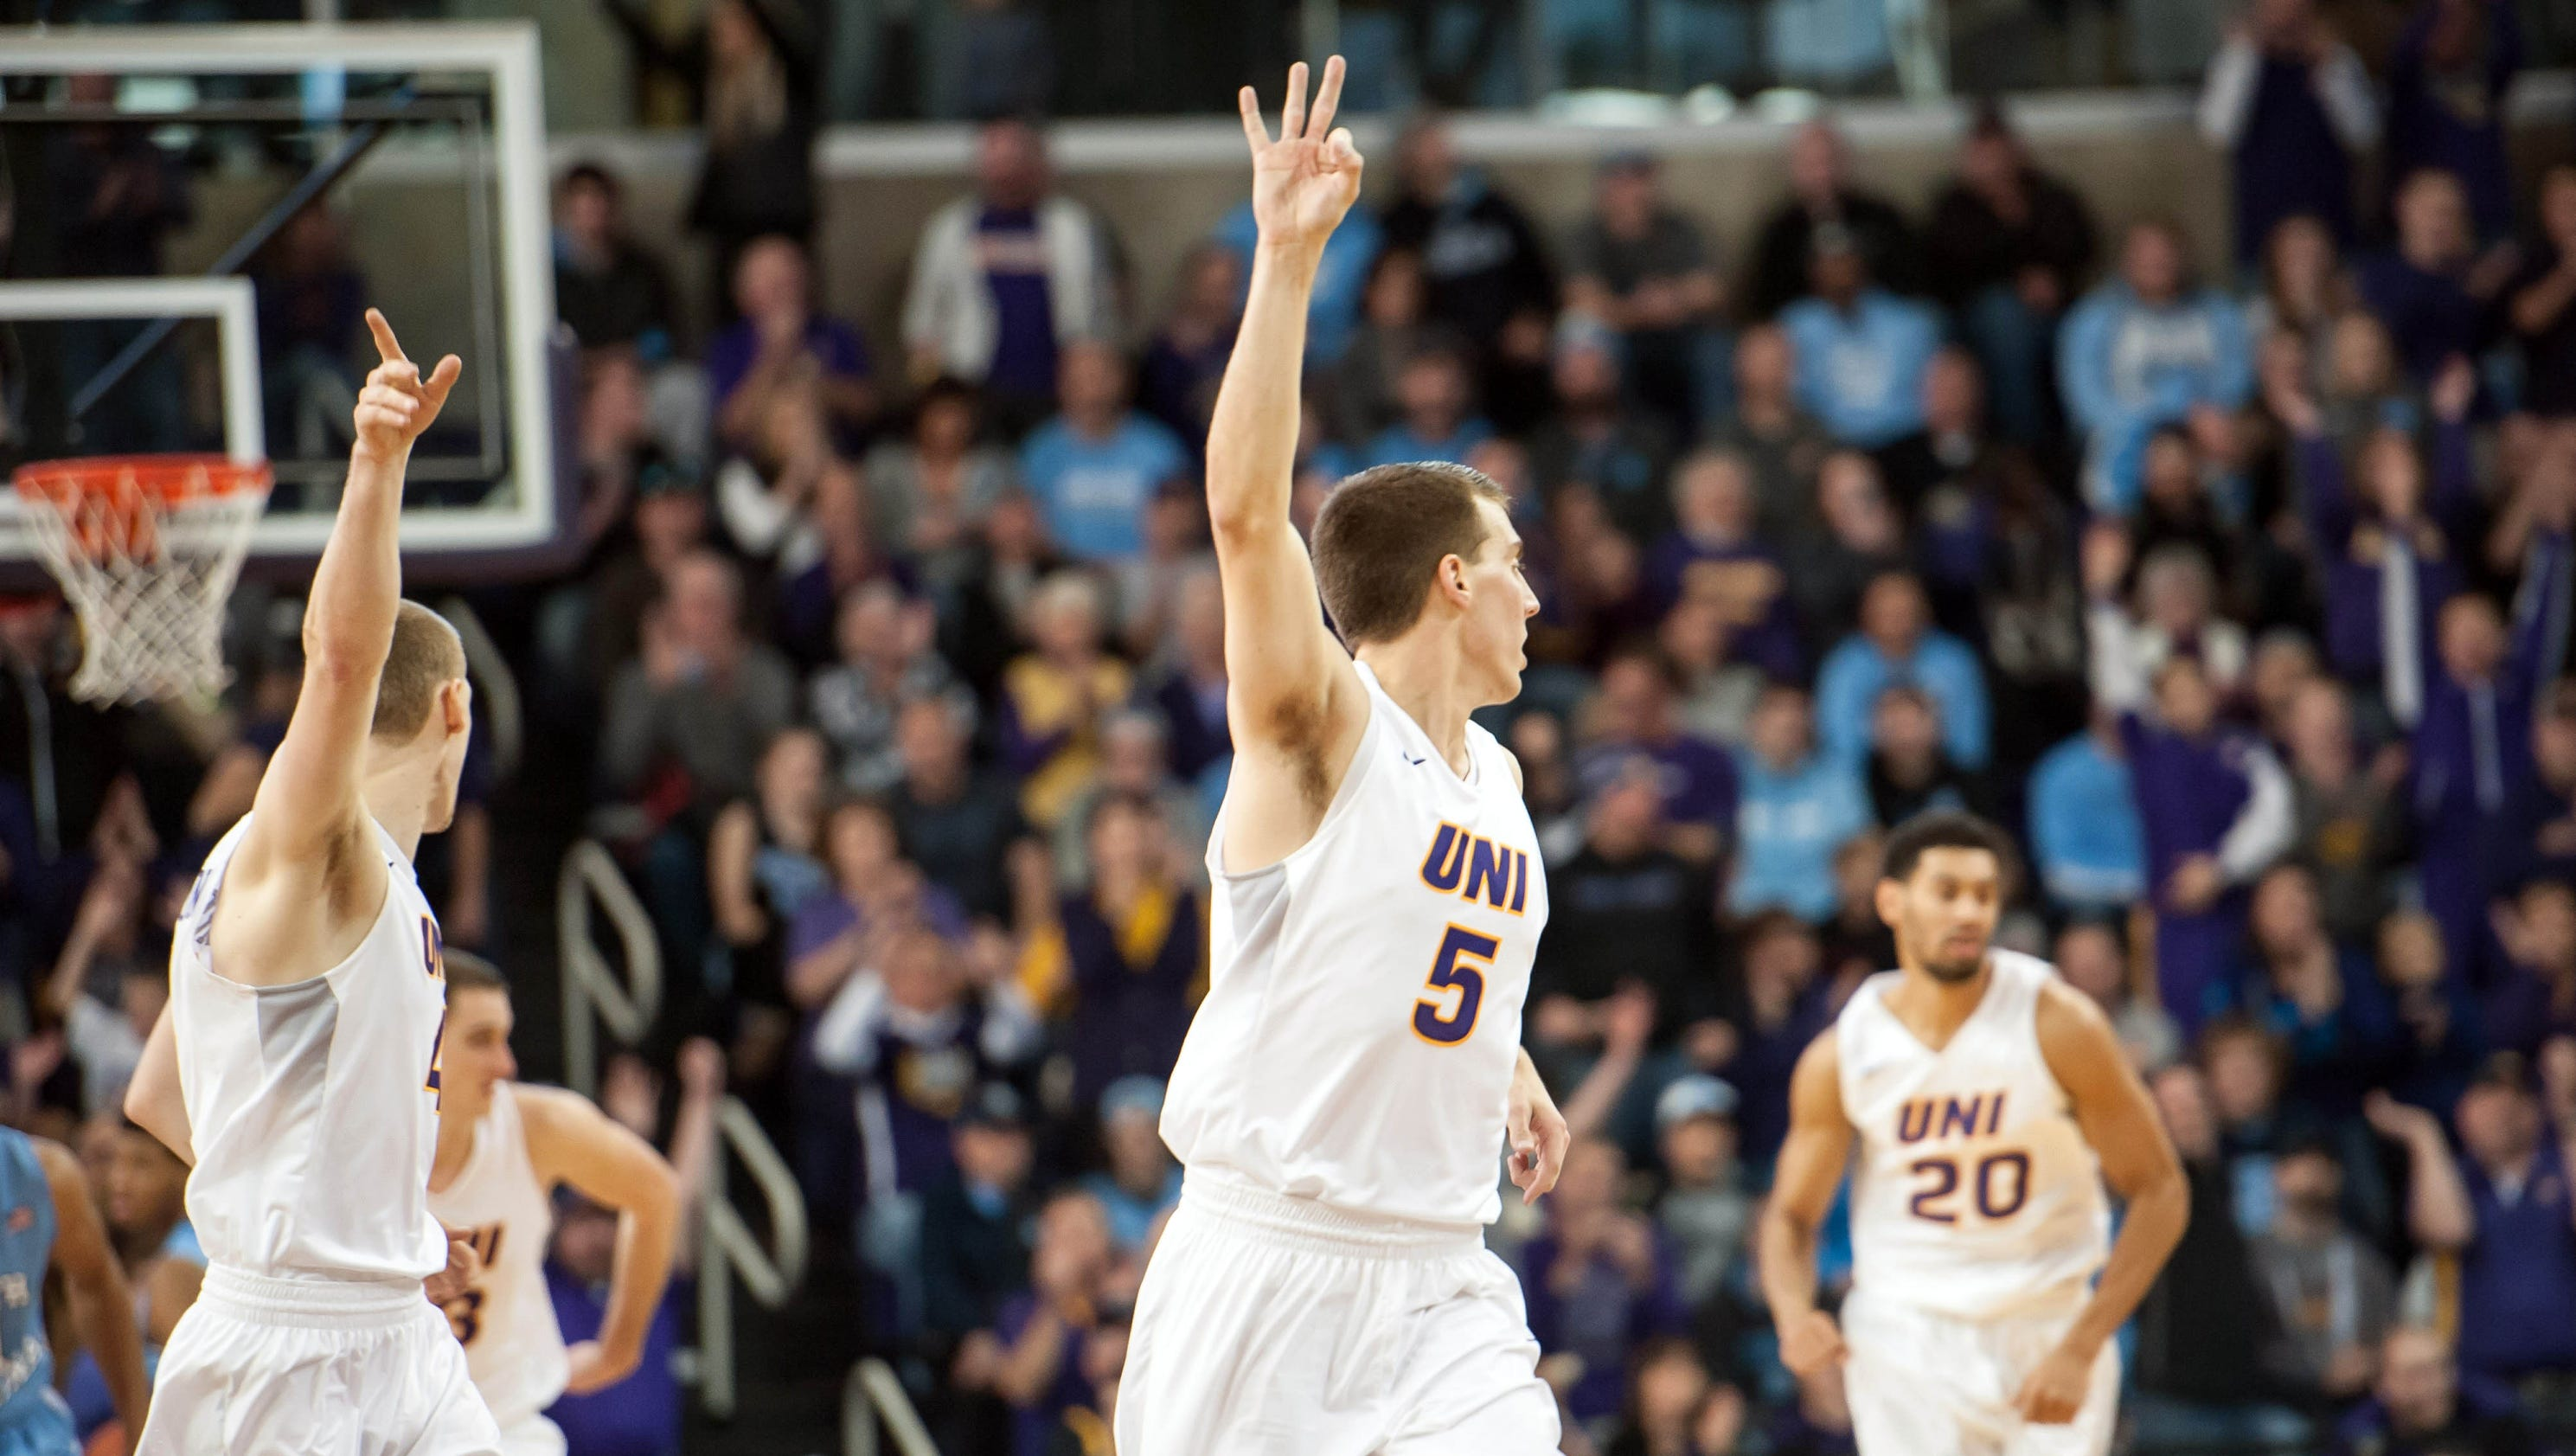 College basketball in November: Overlooked, but very important